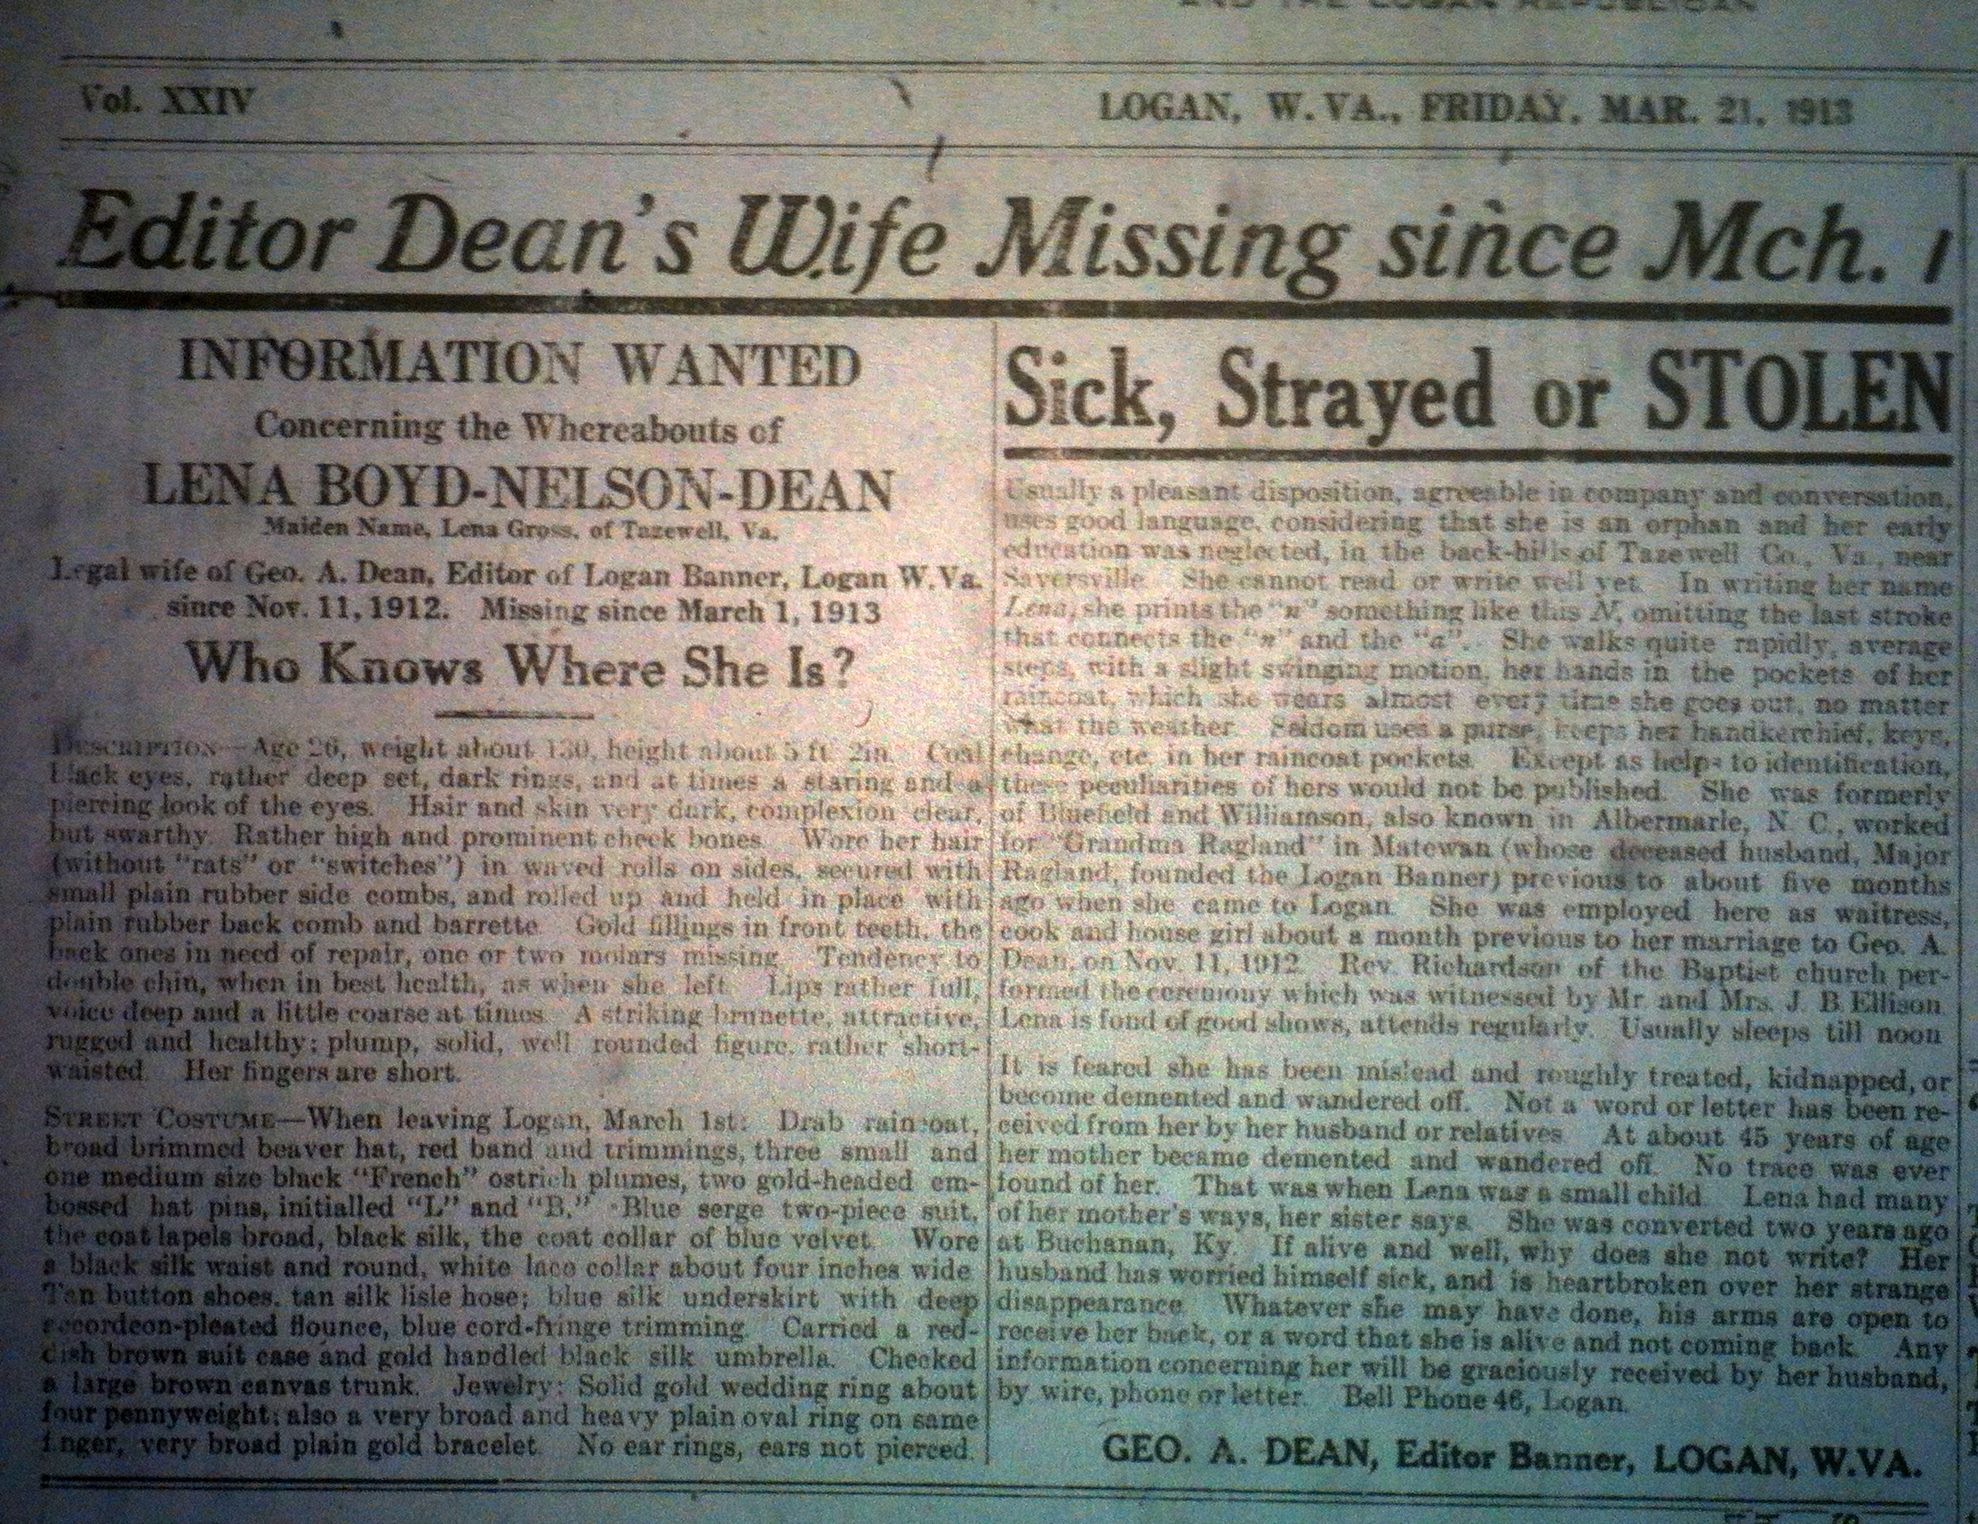 George A. Dean's Wife Missing LB 03.21.1913 1